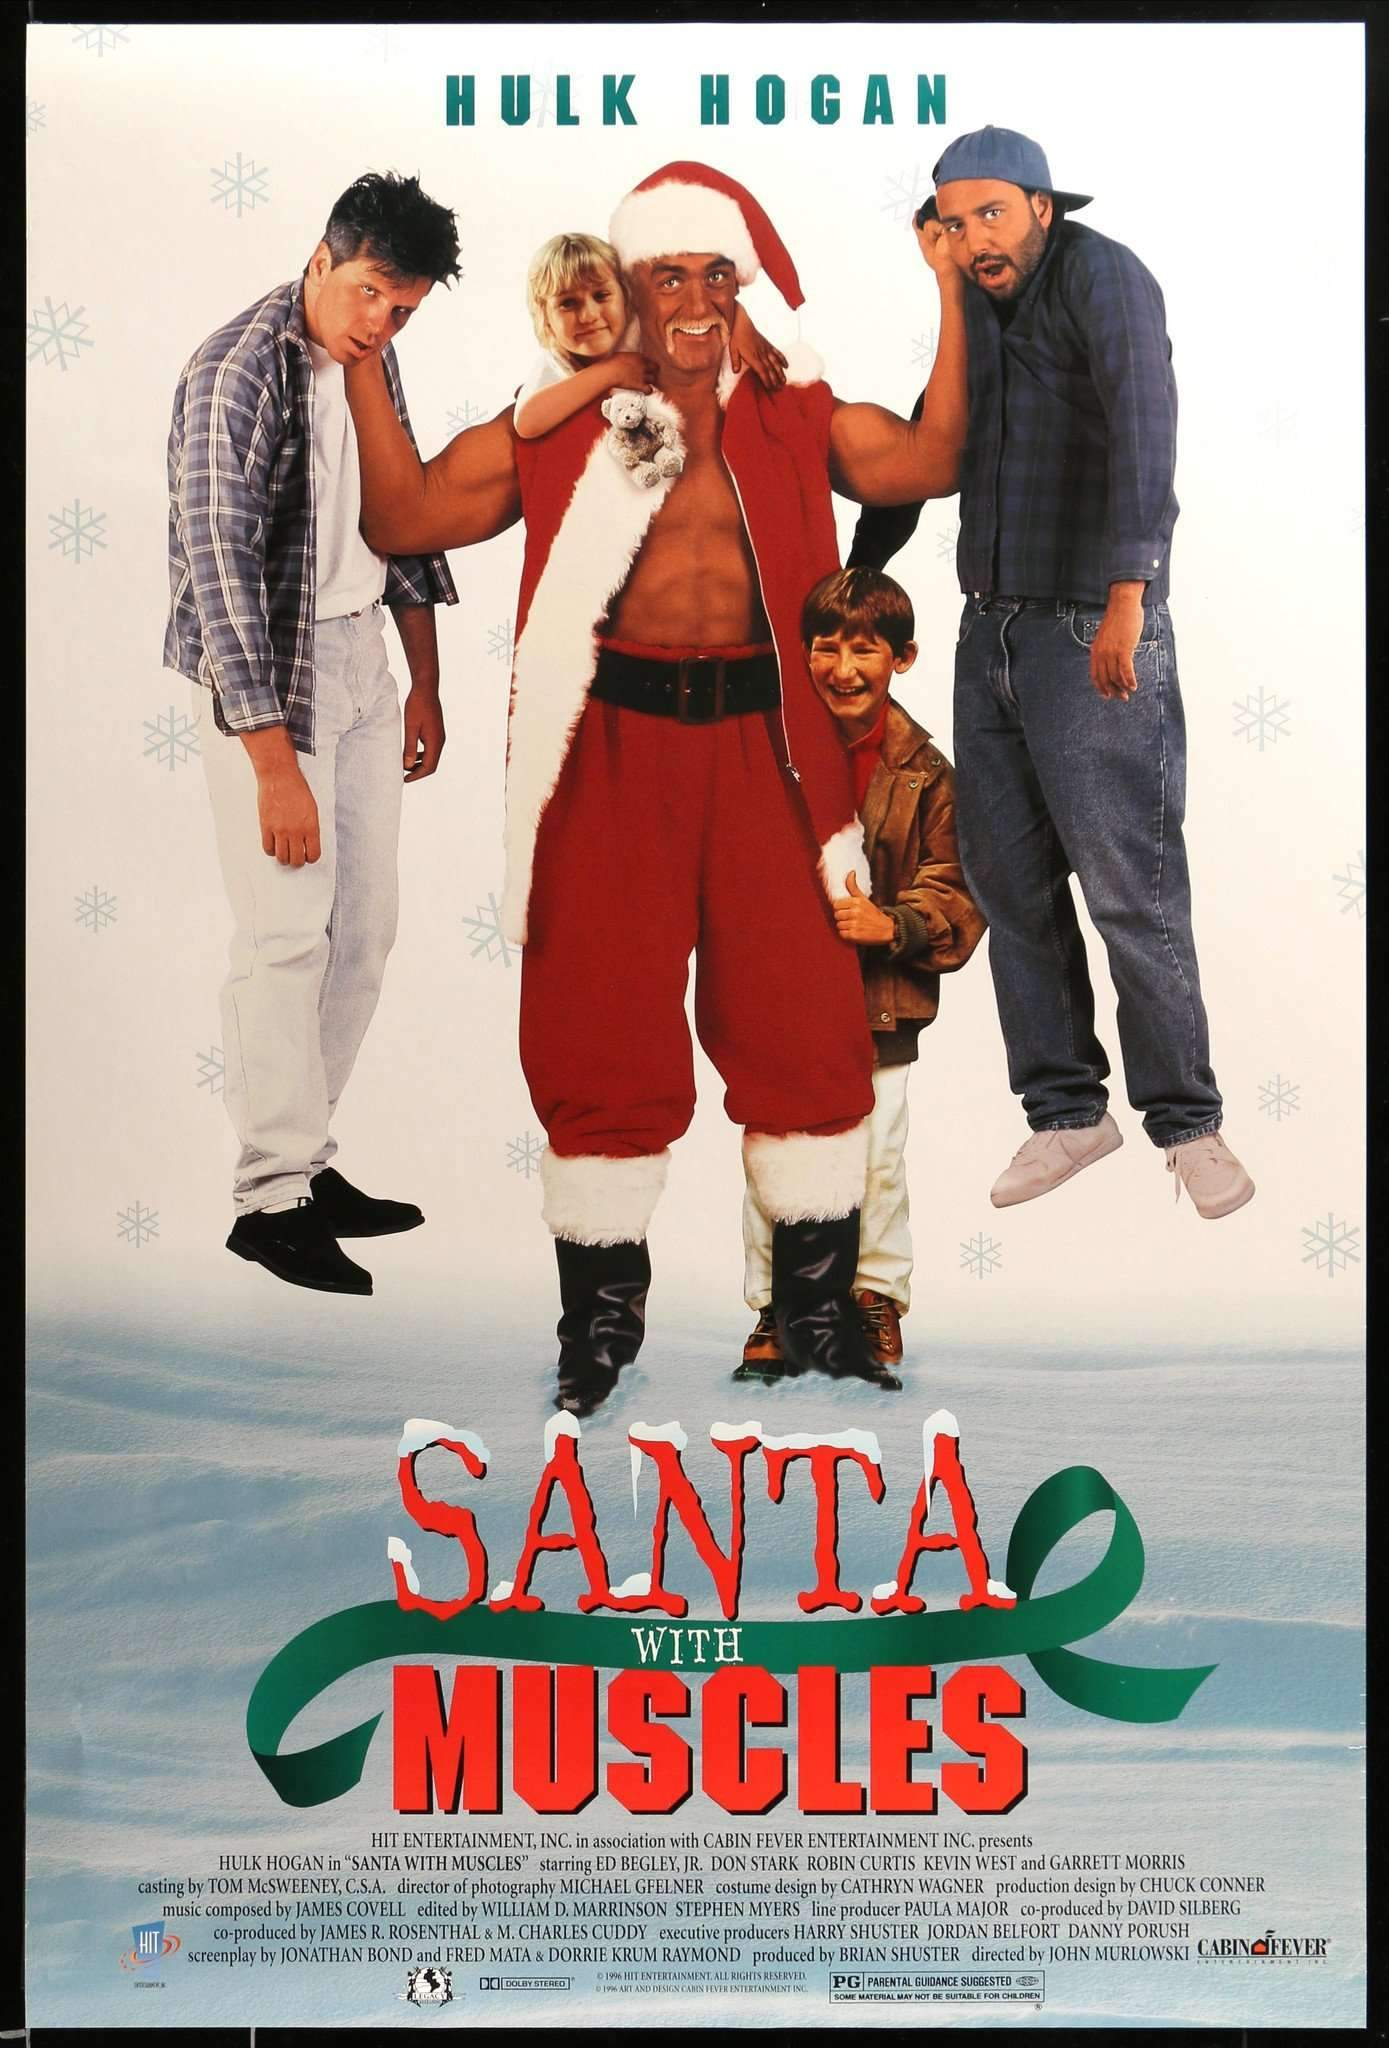 Santa With Muscles (Cabin Fever Entertainment, 1996).